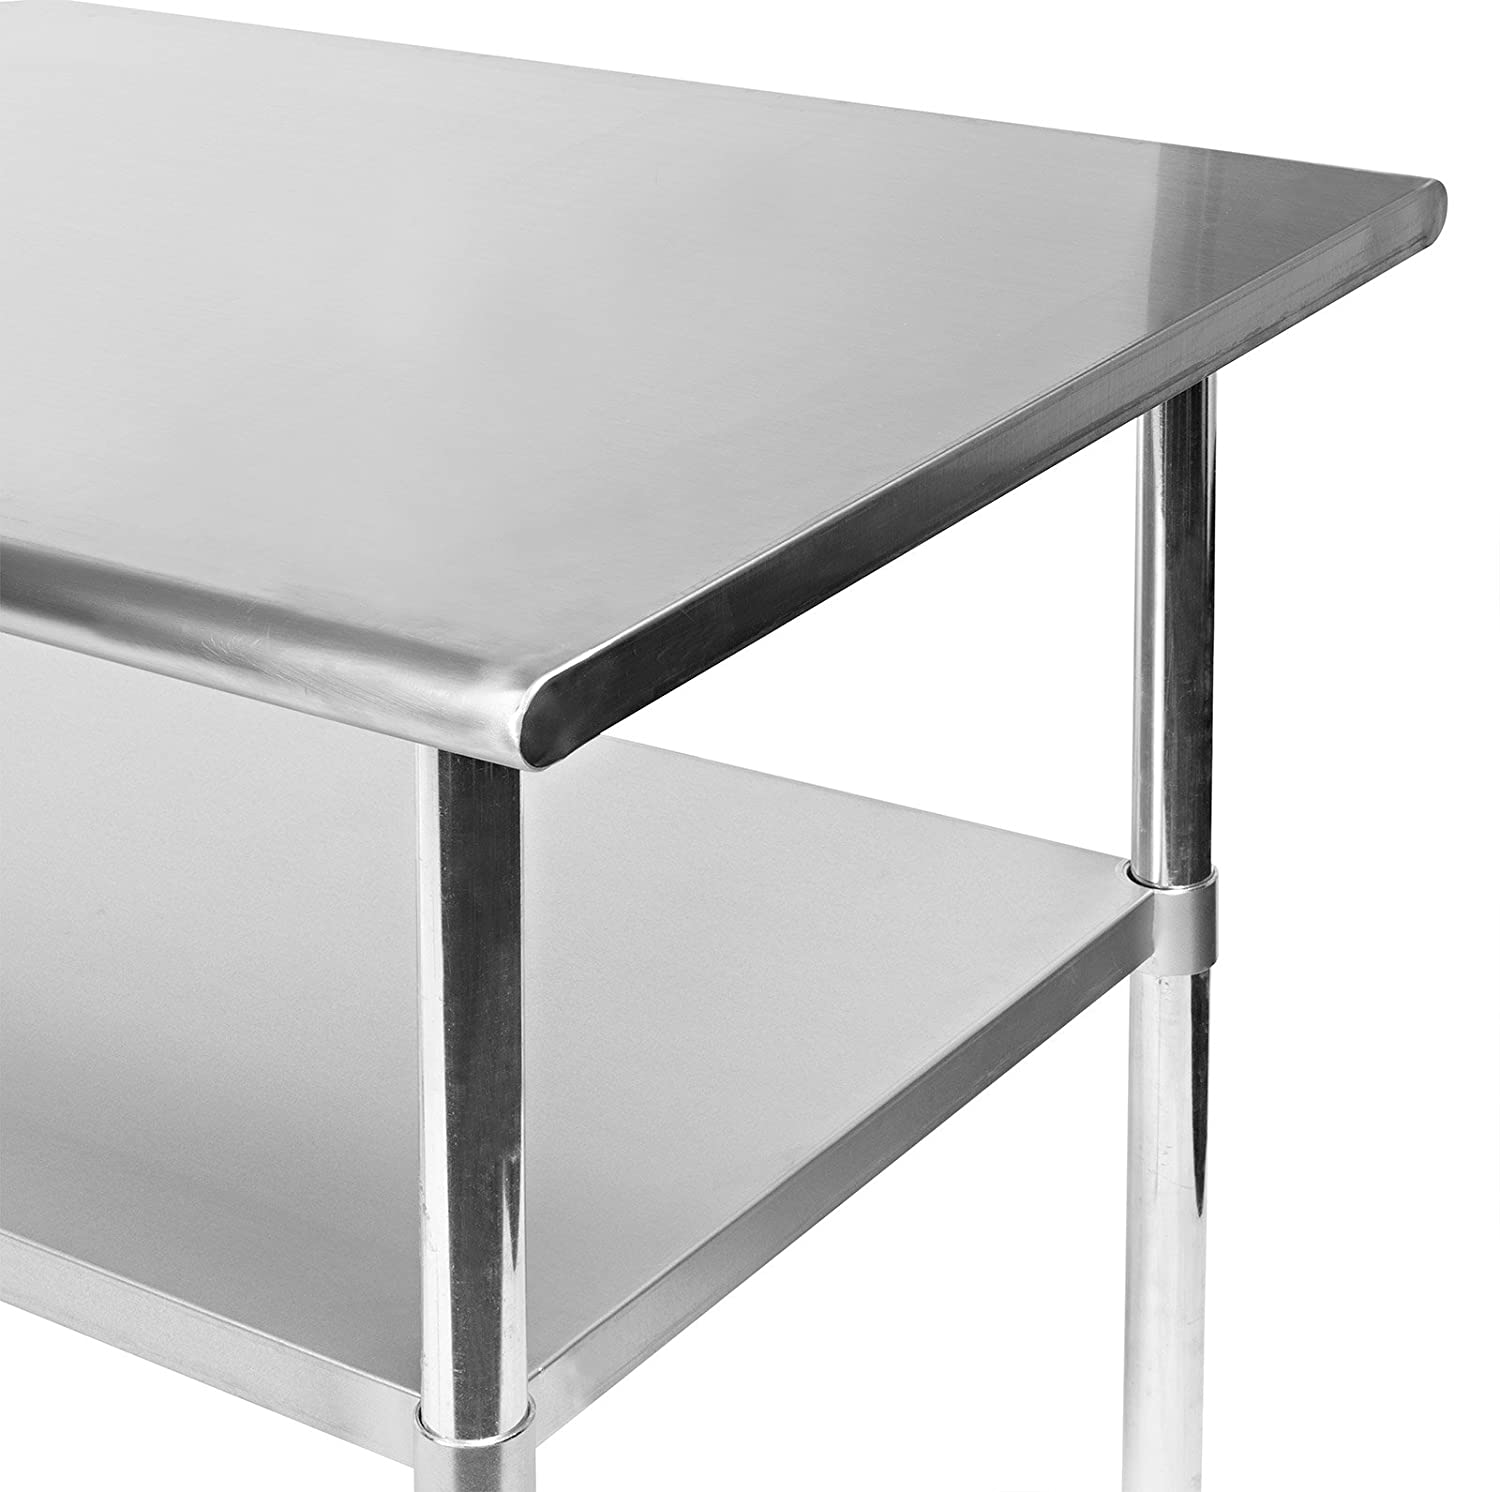 Amazoncom Gridmann Inch X Inch Stainless Steel Kitchen Table - 8 ft stainless steel work table